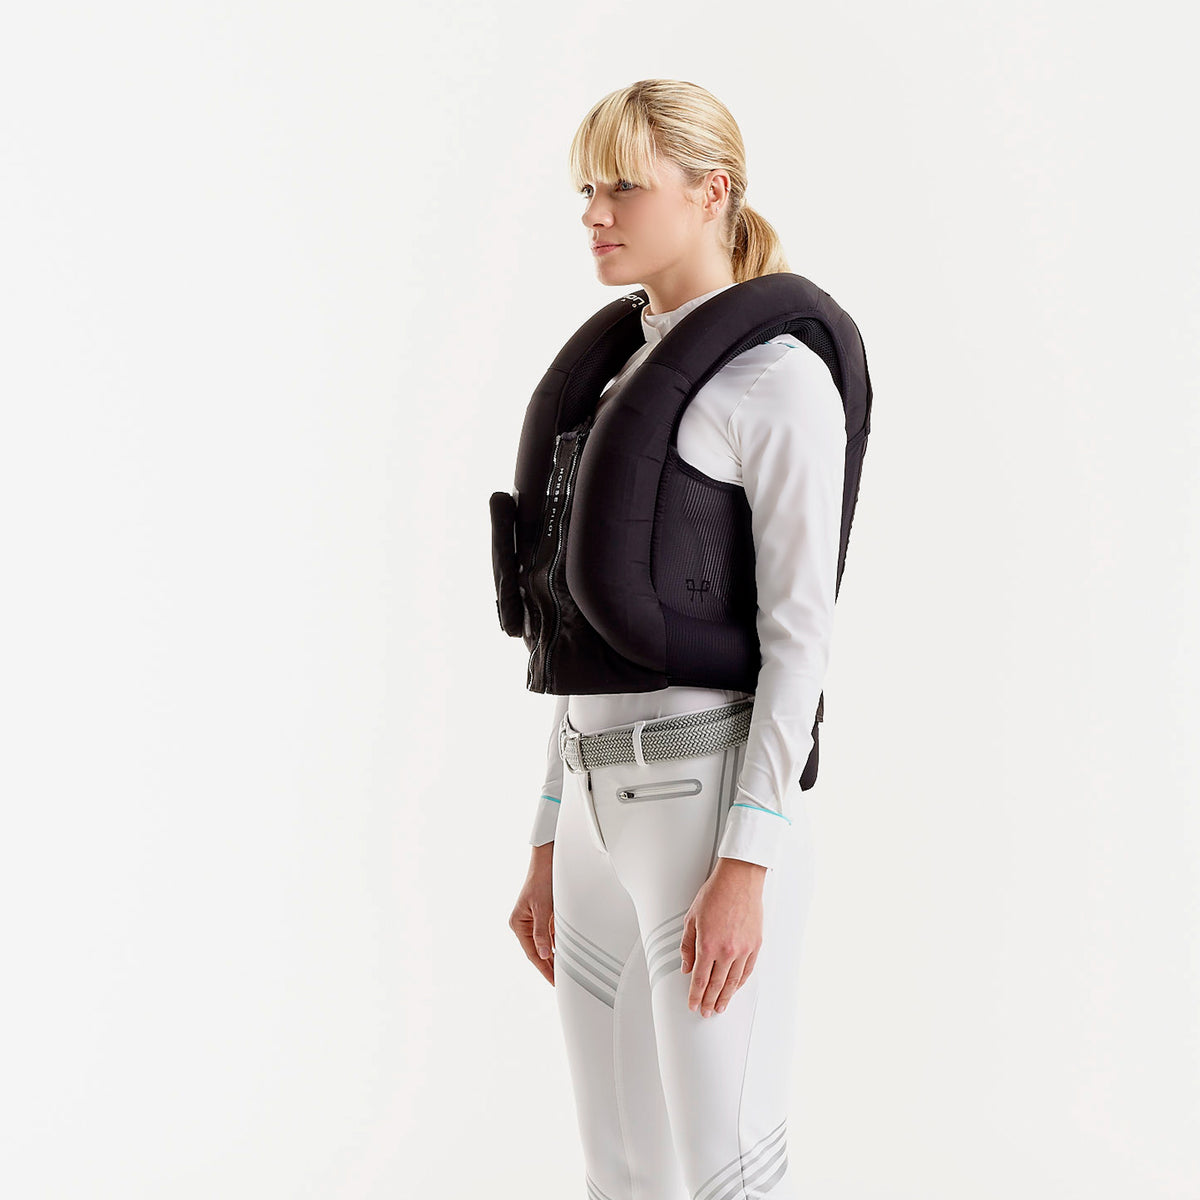 Horse Pilot Airbag Light Safety Vest - Unisex